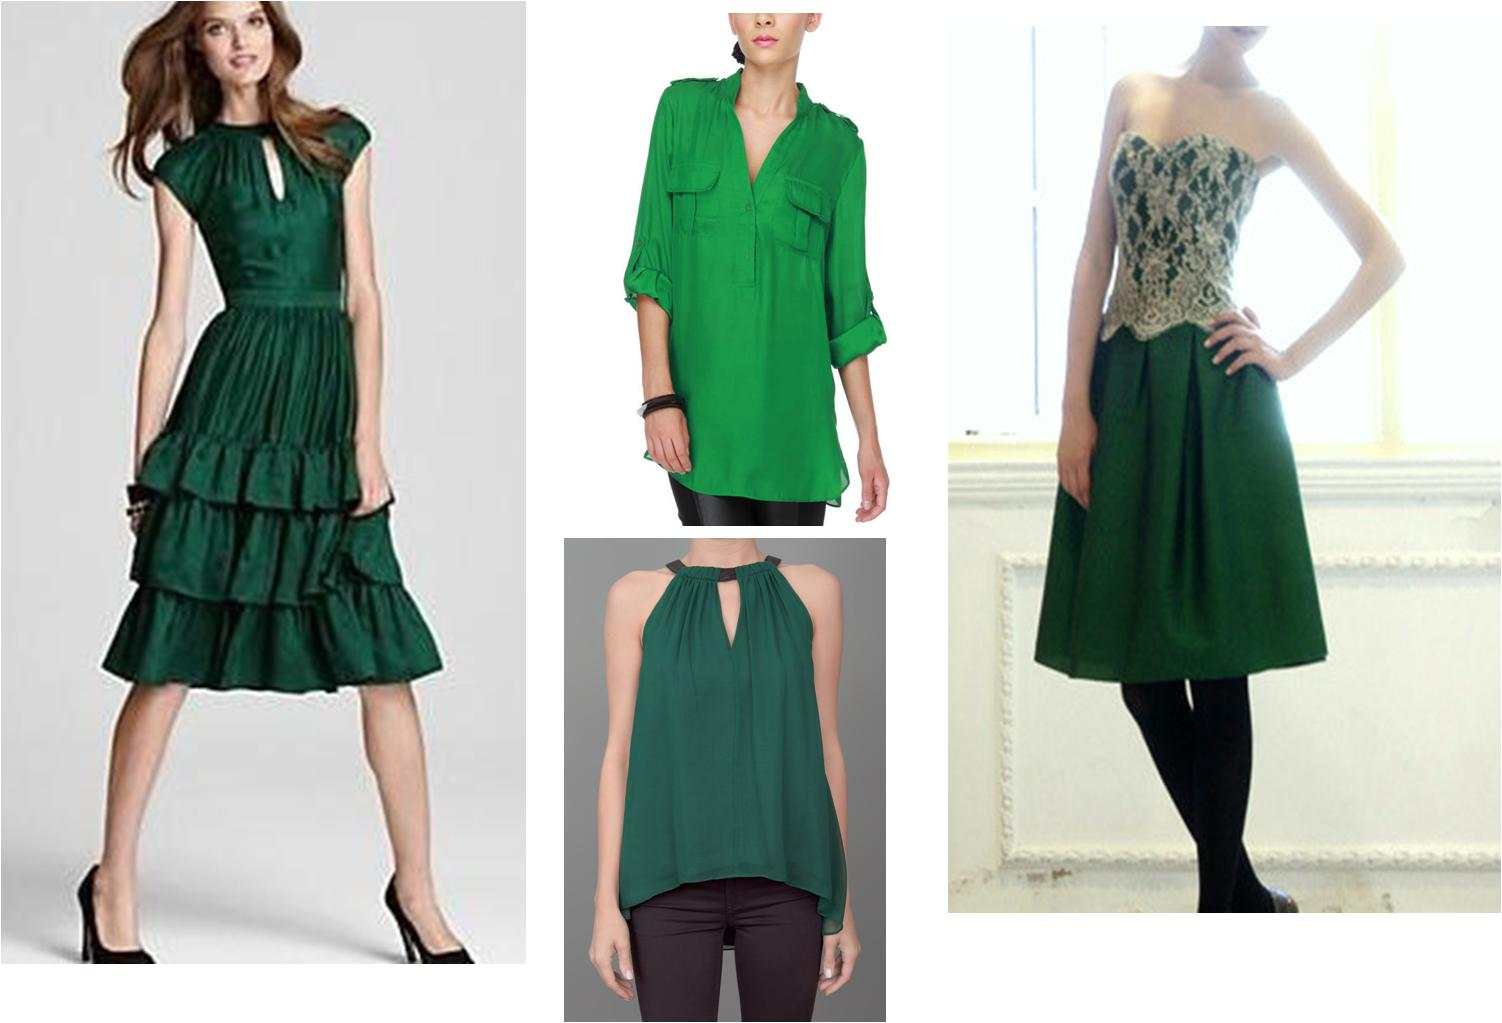 trend alert wearing emerald green dissections